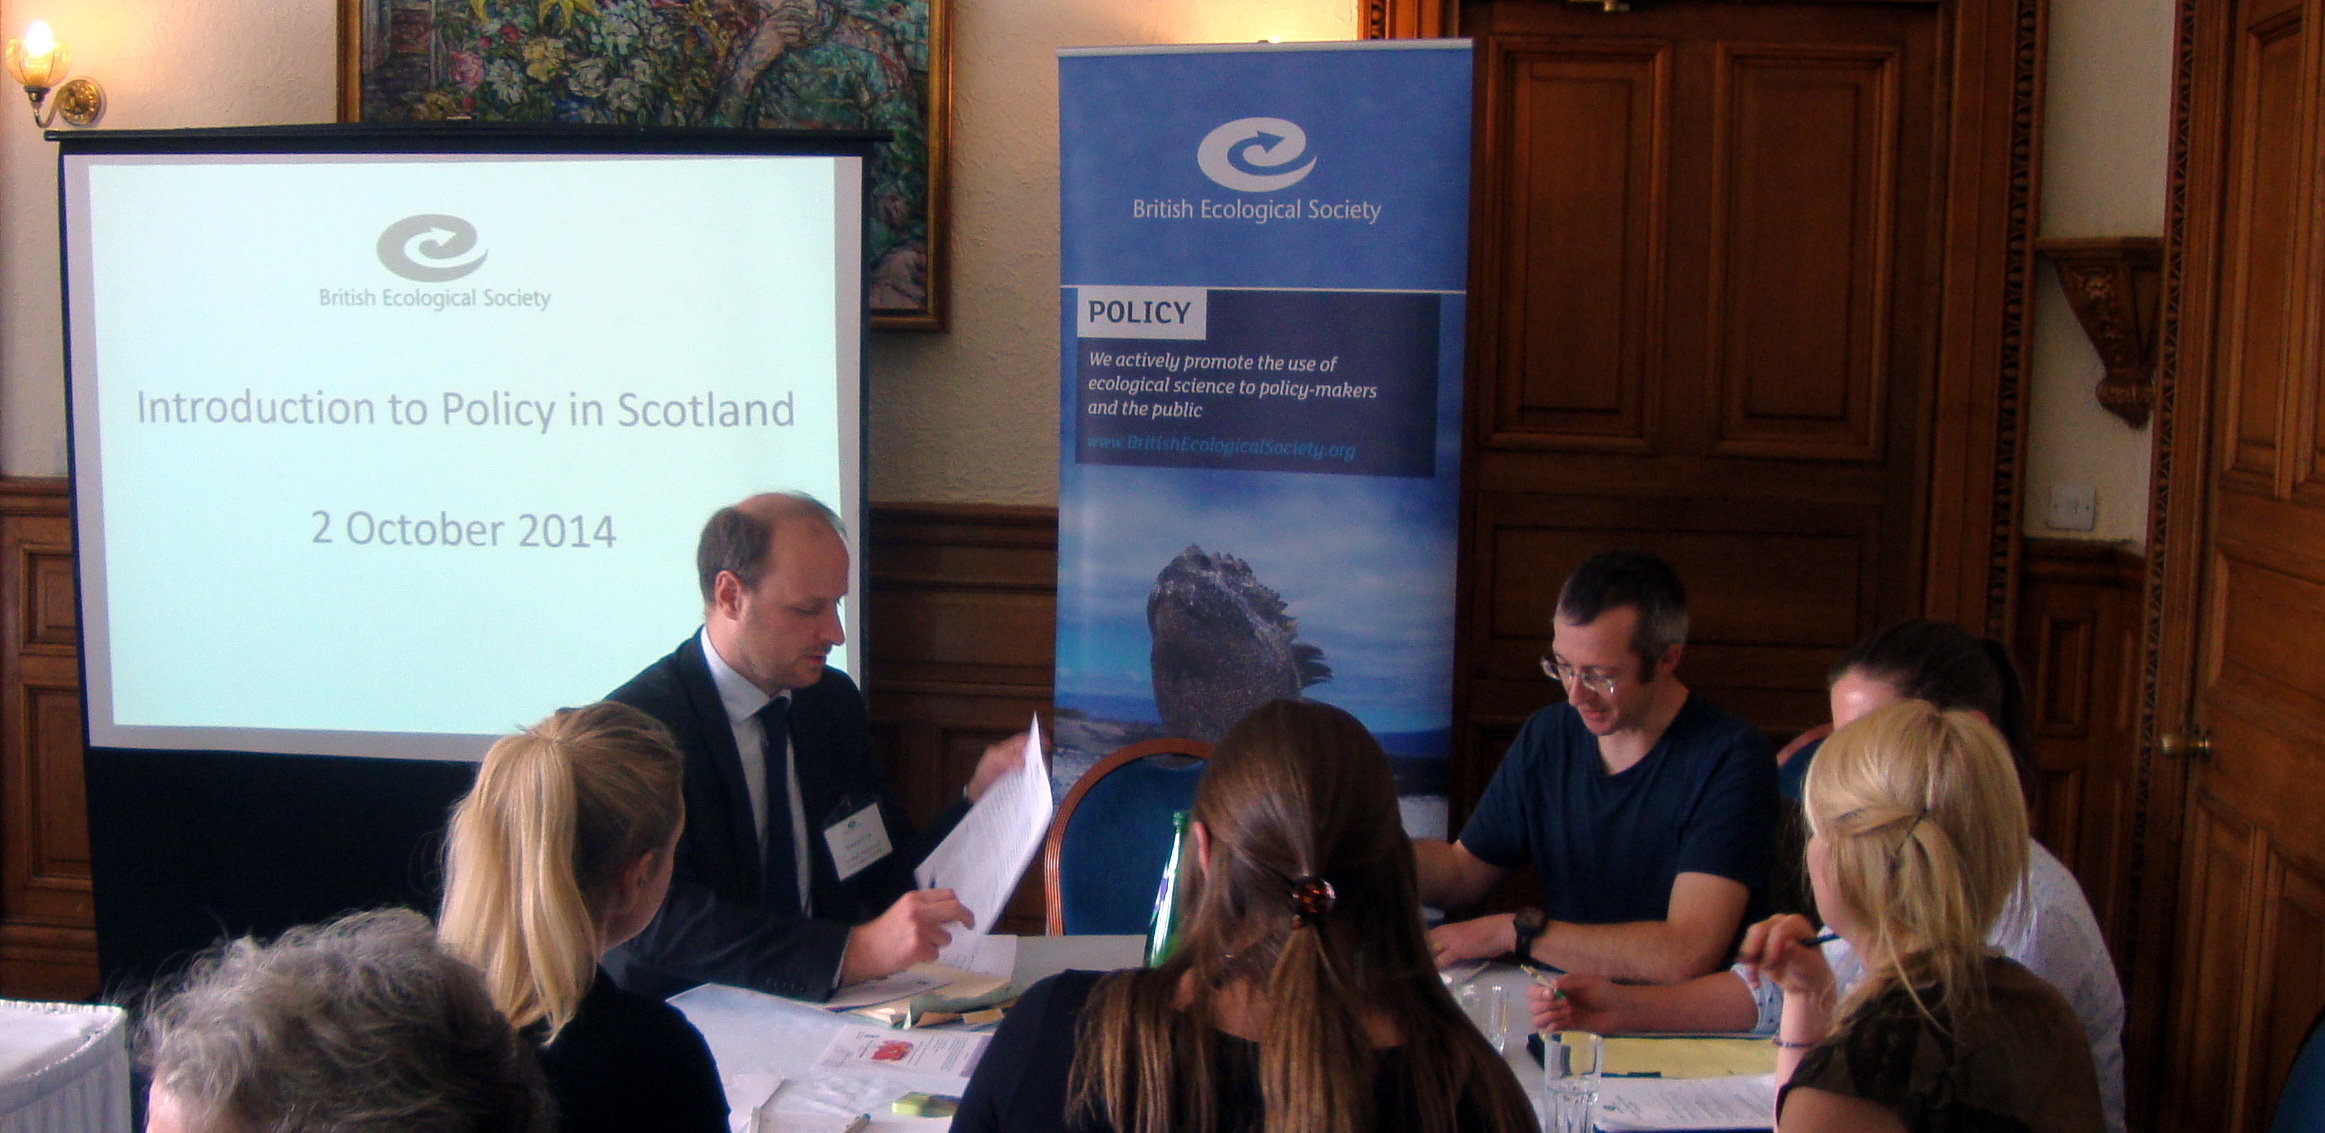 Introduction to Policy in Scotland